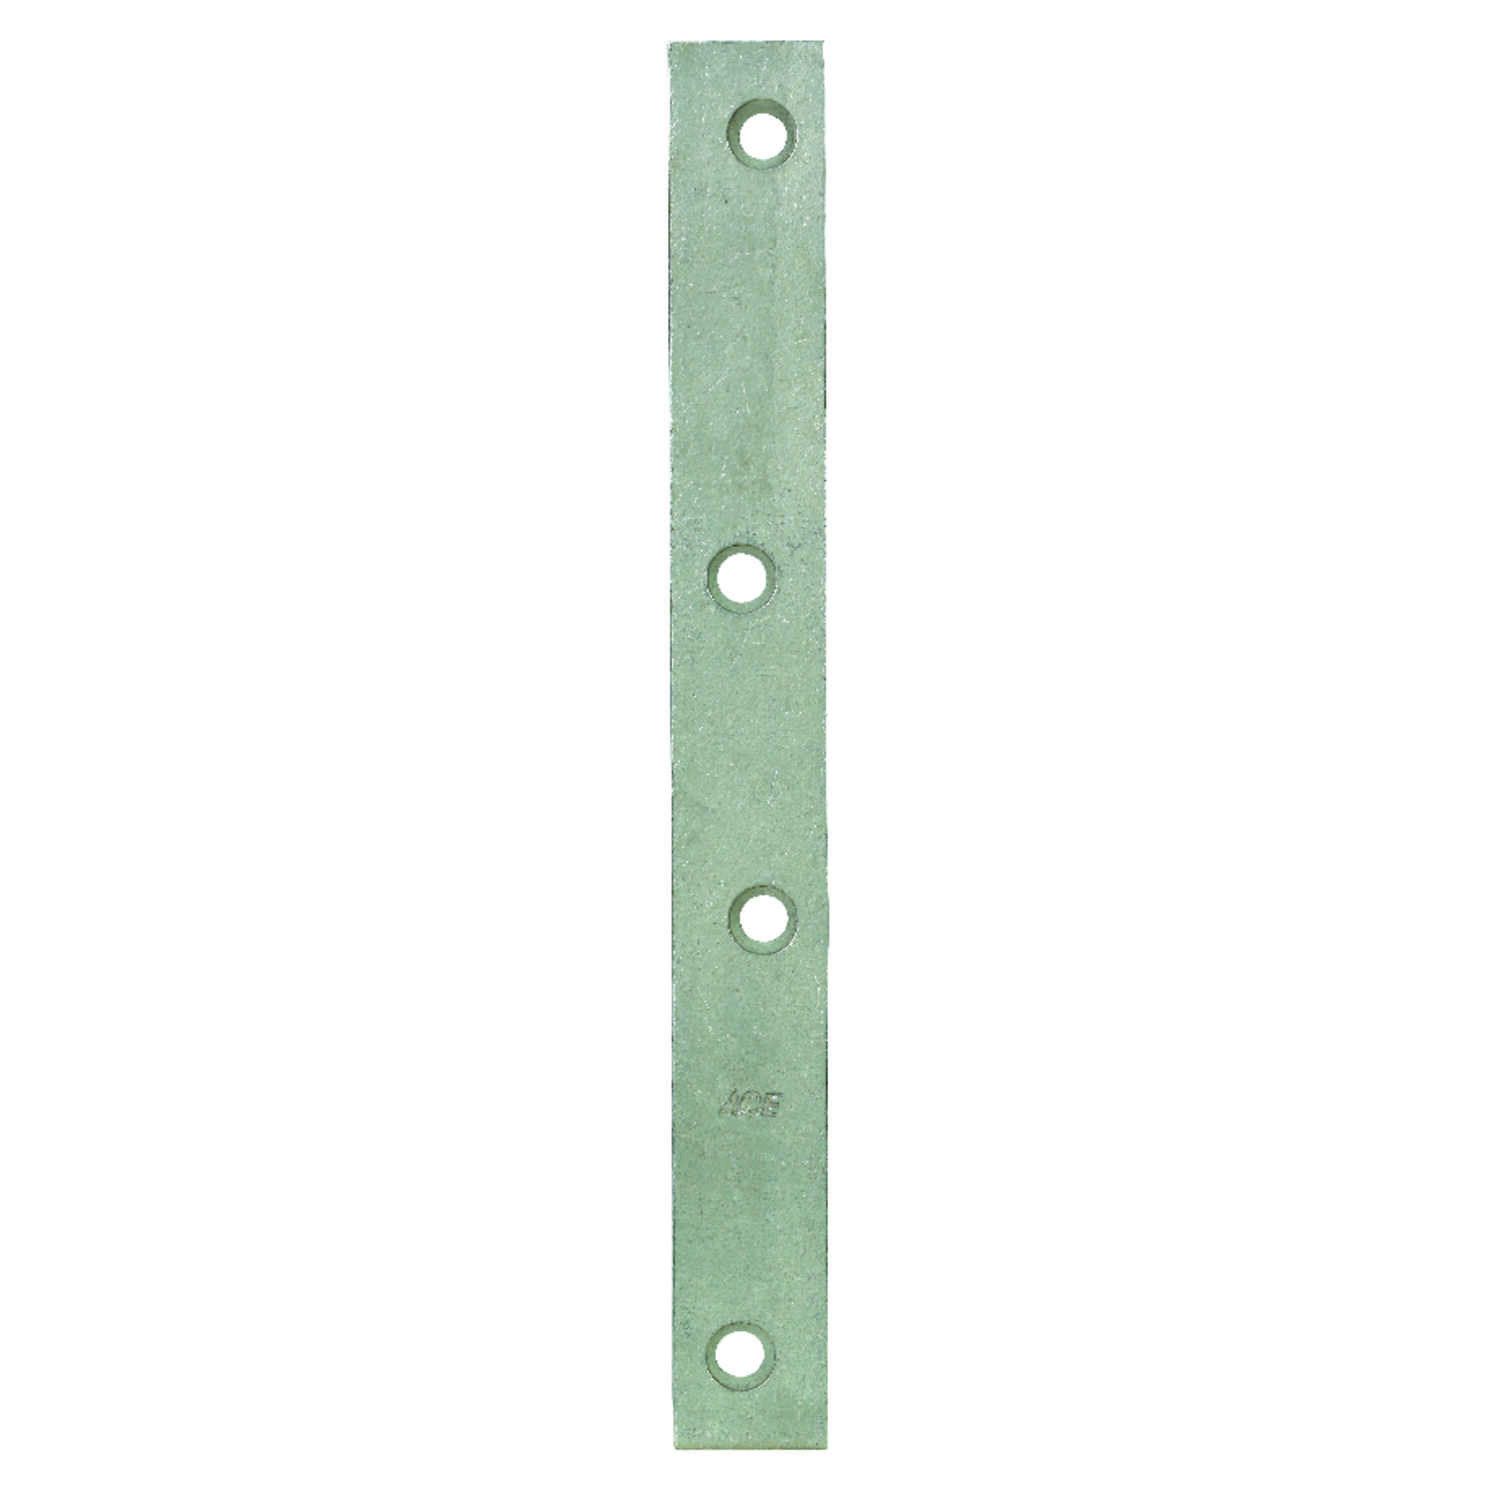 Ace  8 in. H x 0.875 in. W x .141 in. L Galvanized  Steel  Mending Brace